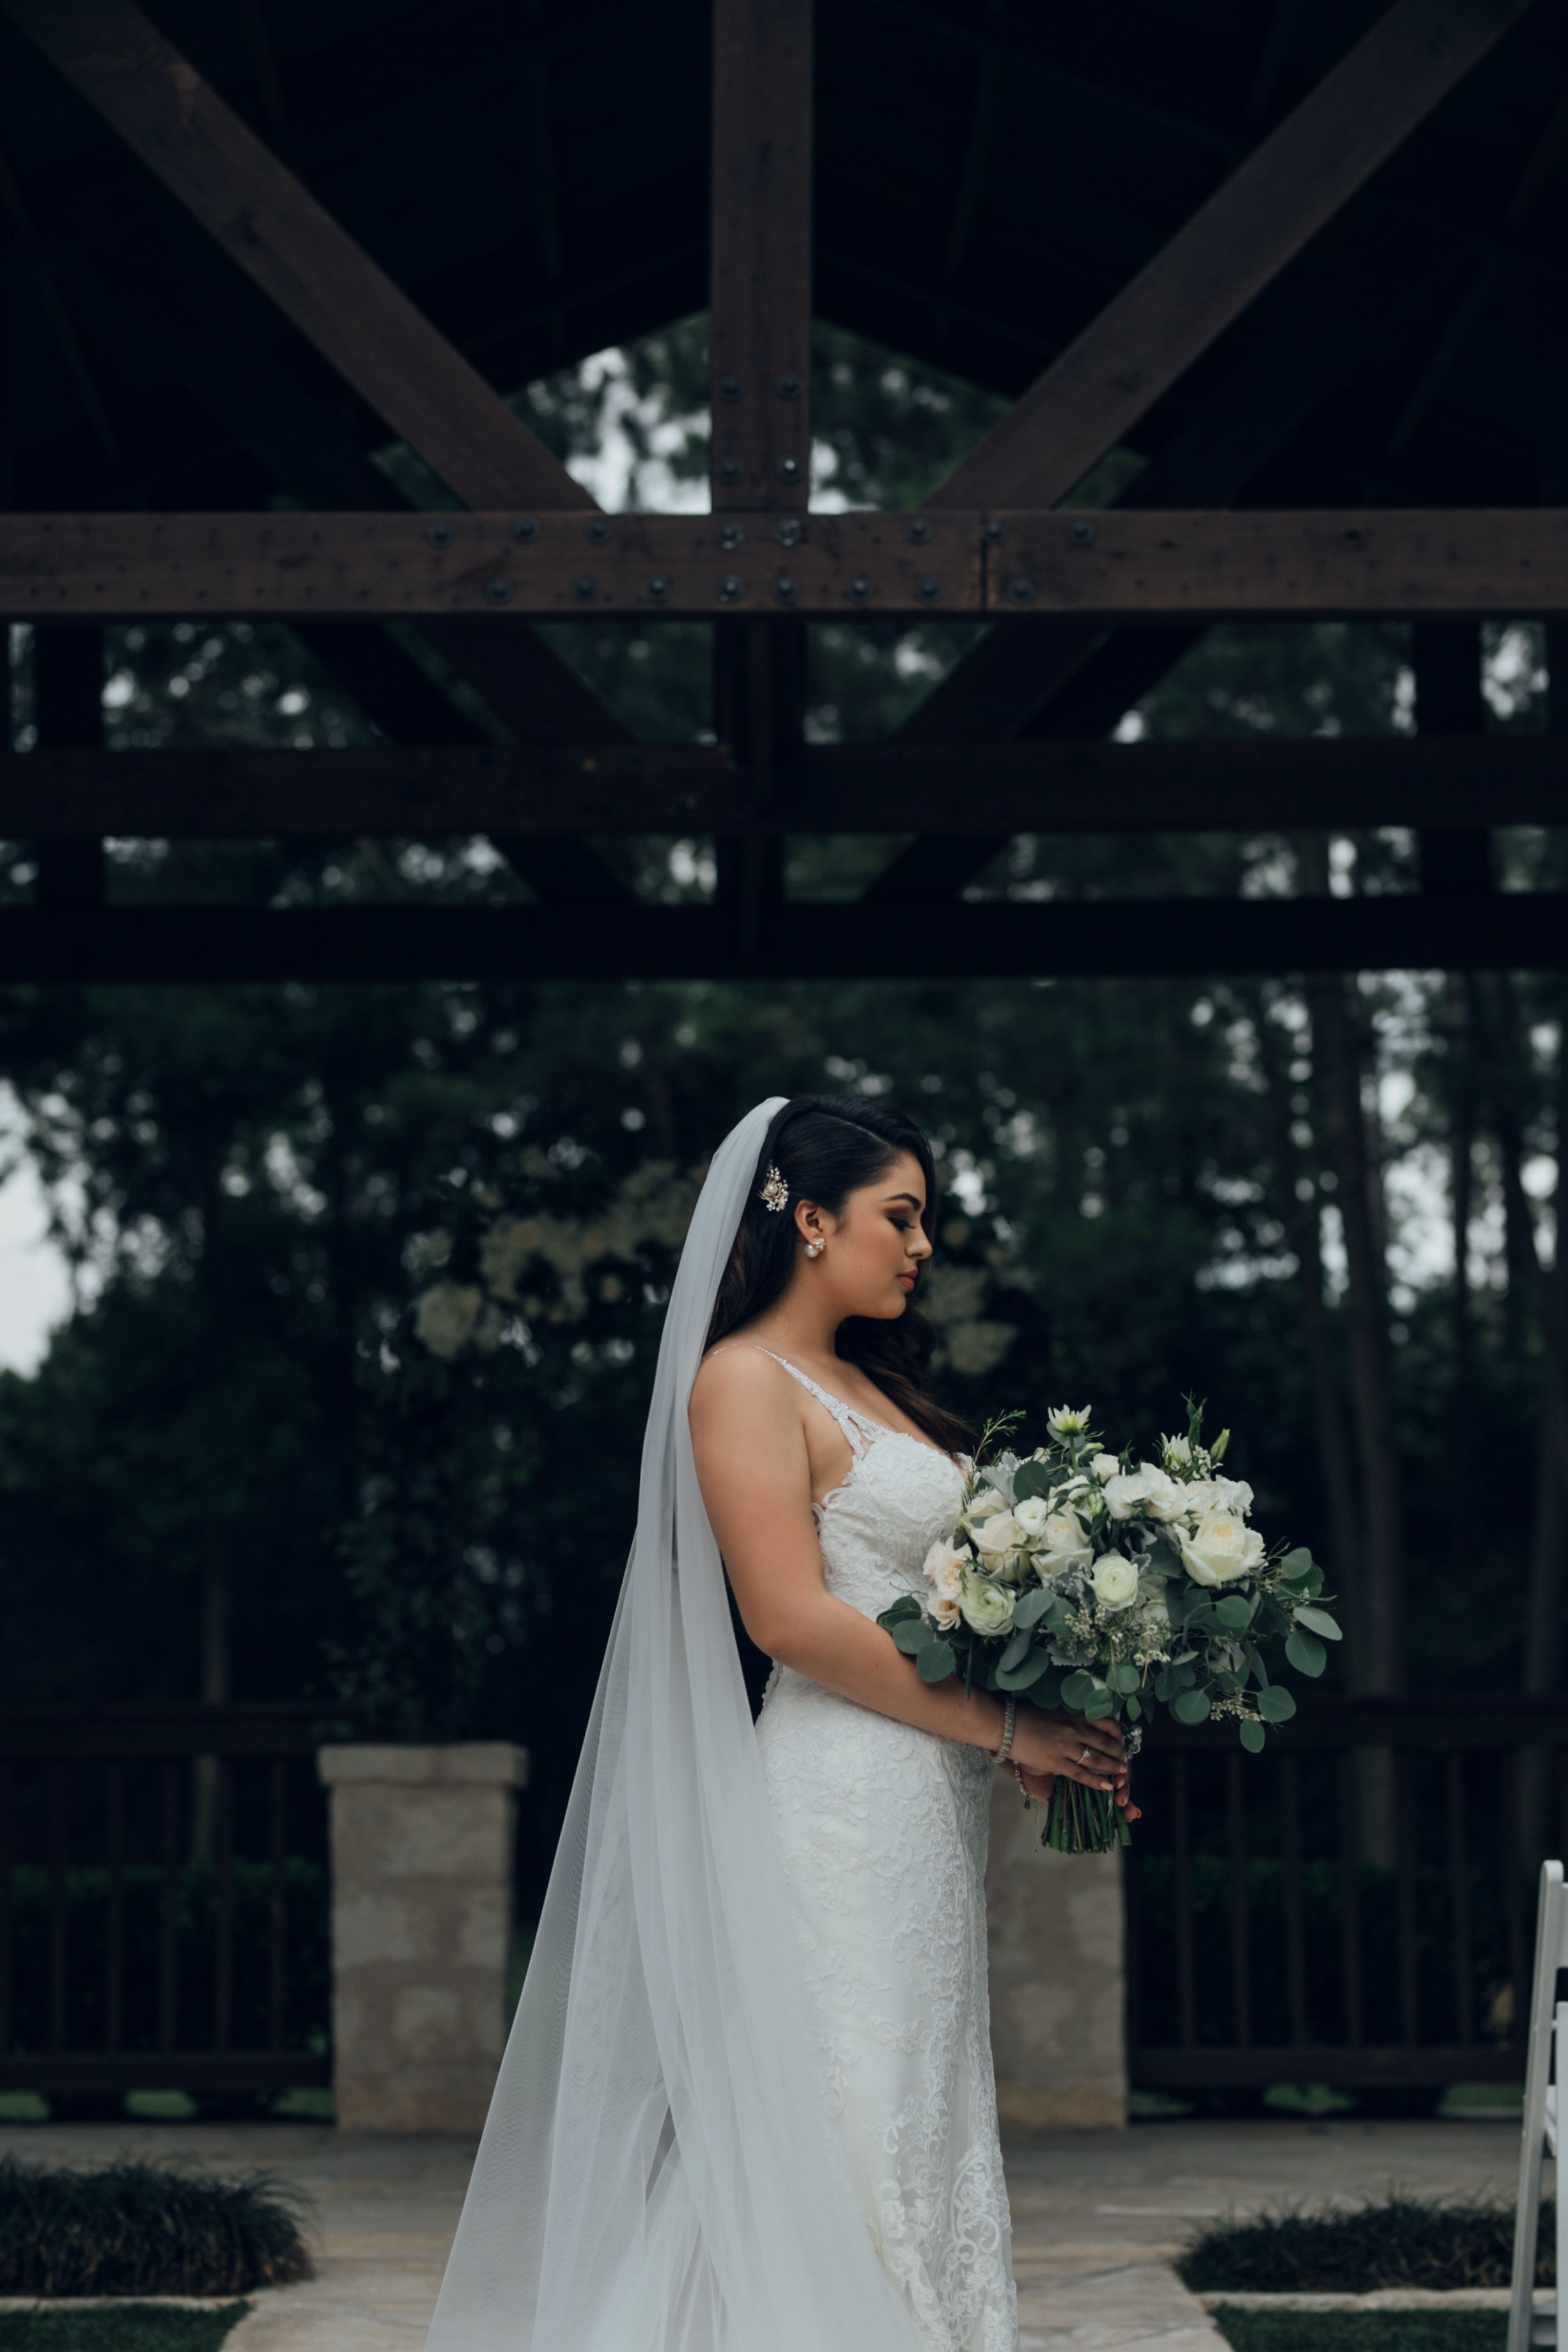 bridals taken at the outdoor ceremony site of THE